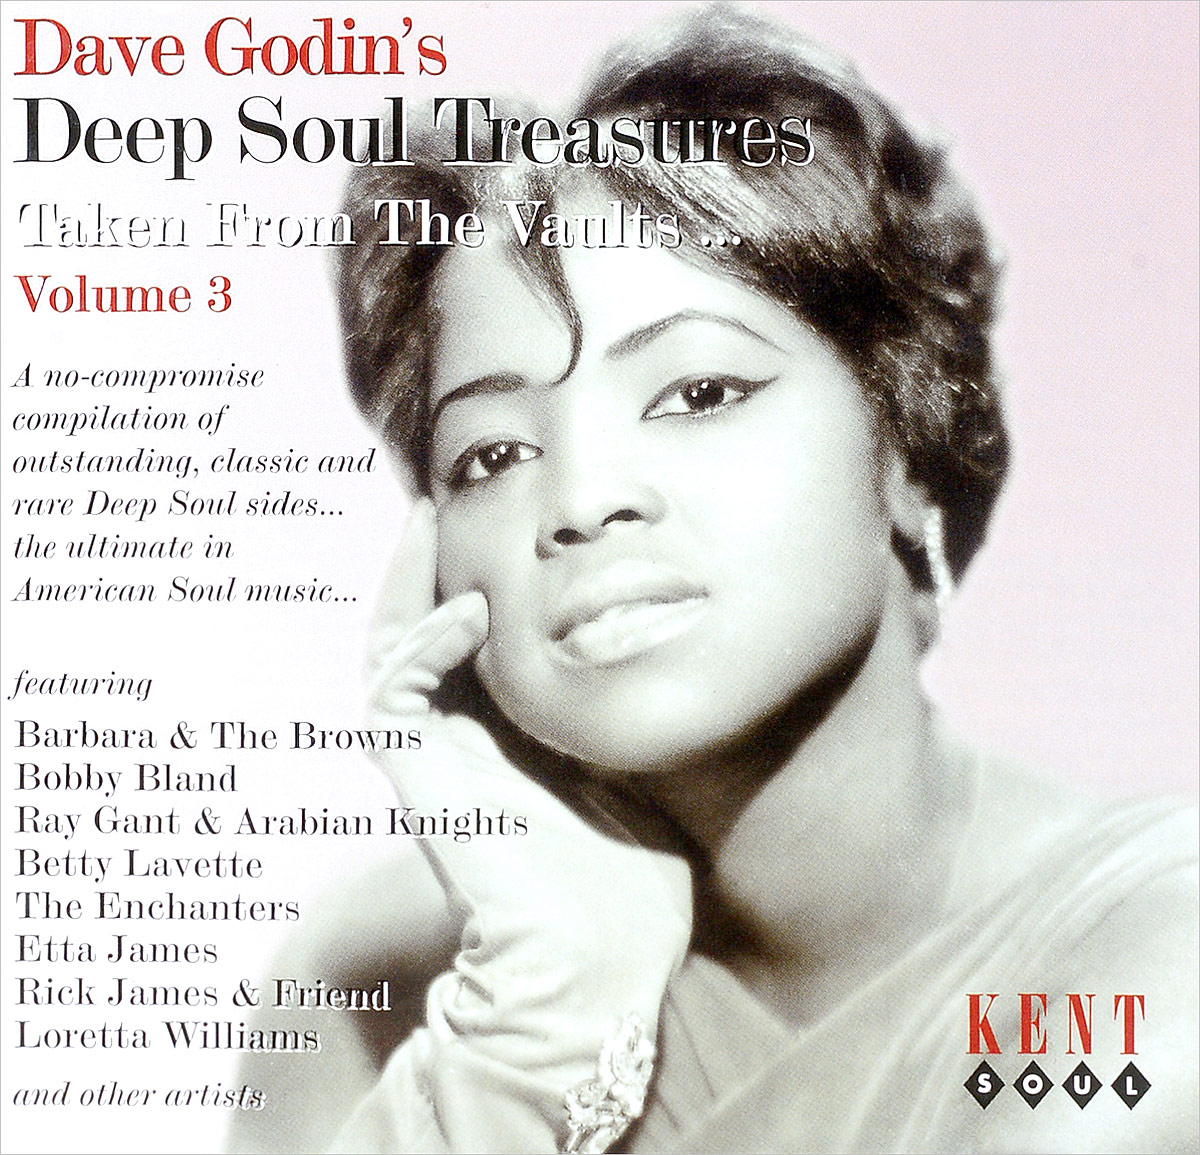 Dave Godin's Deep Soul Treasures: Taken From Our Vaults Volume 3 dave godin s deep soul treasures taken from the vaults volume 1